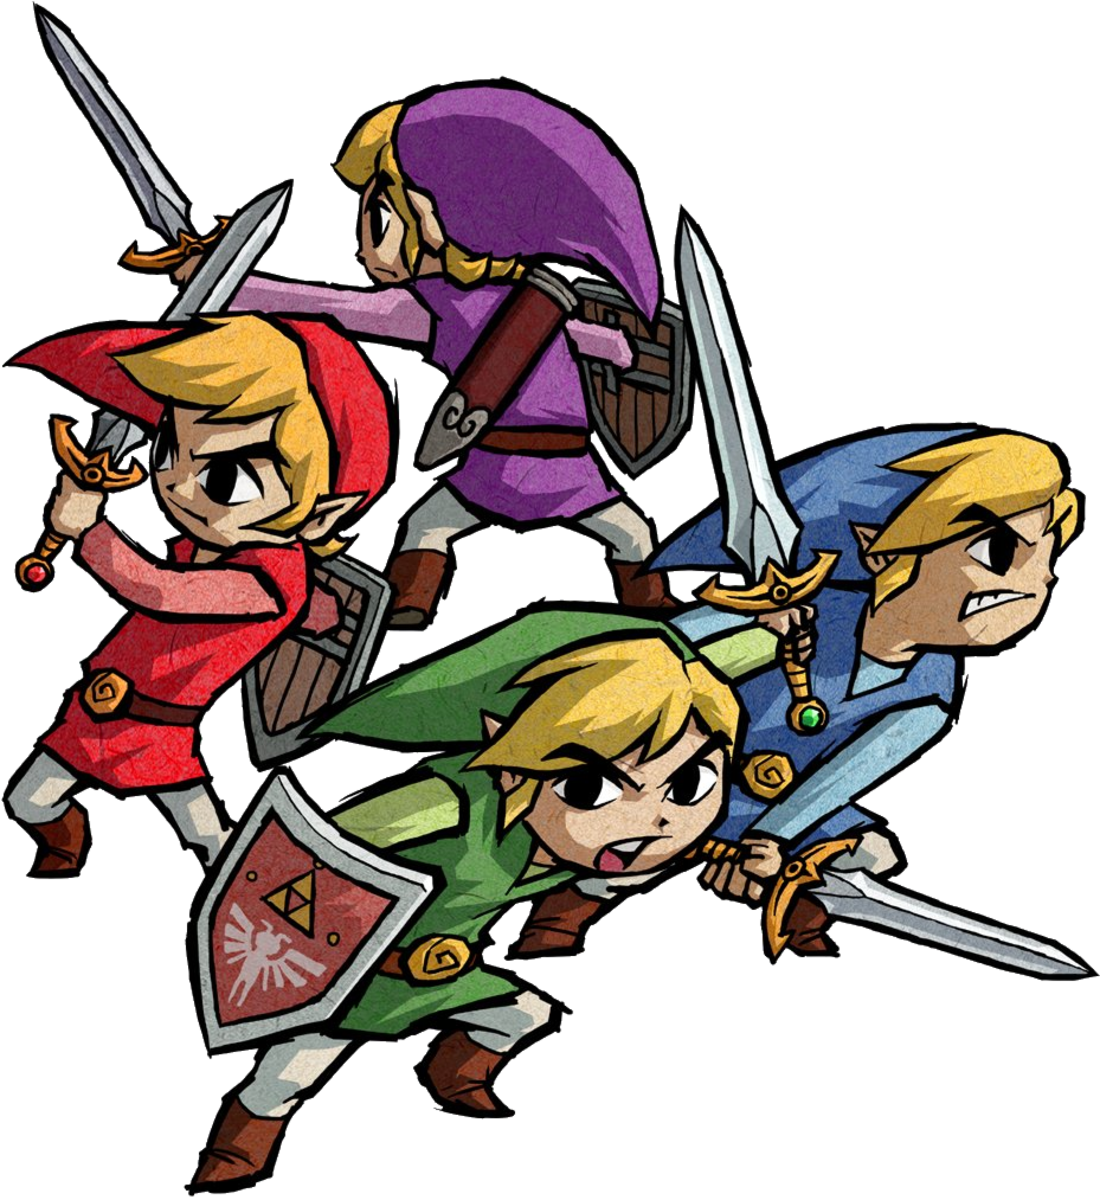 Link's Four Sword Forms